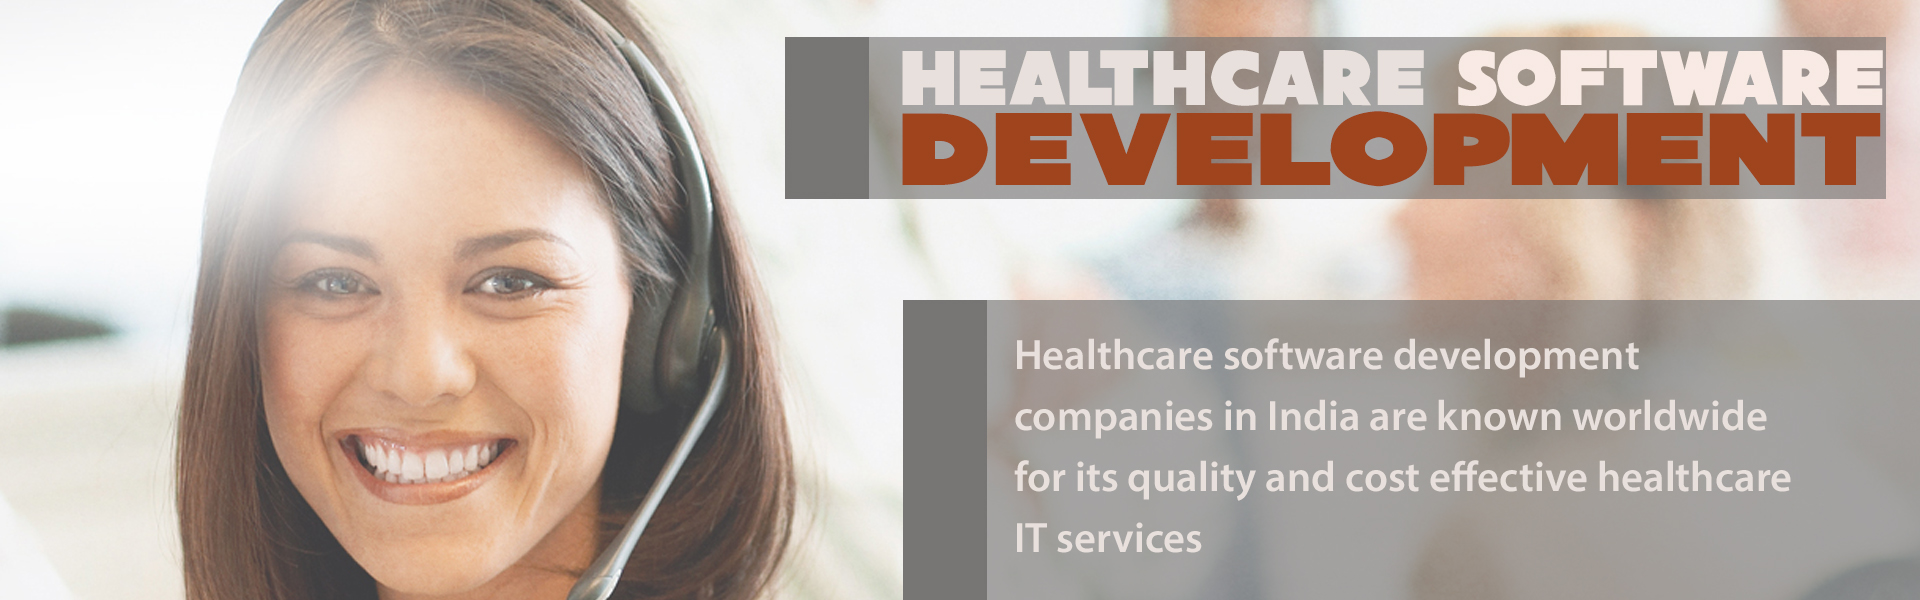 Technology Management Image: Healthcare Software Development